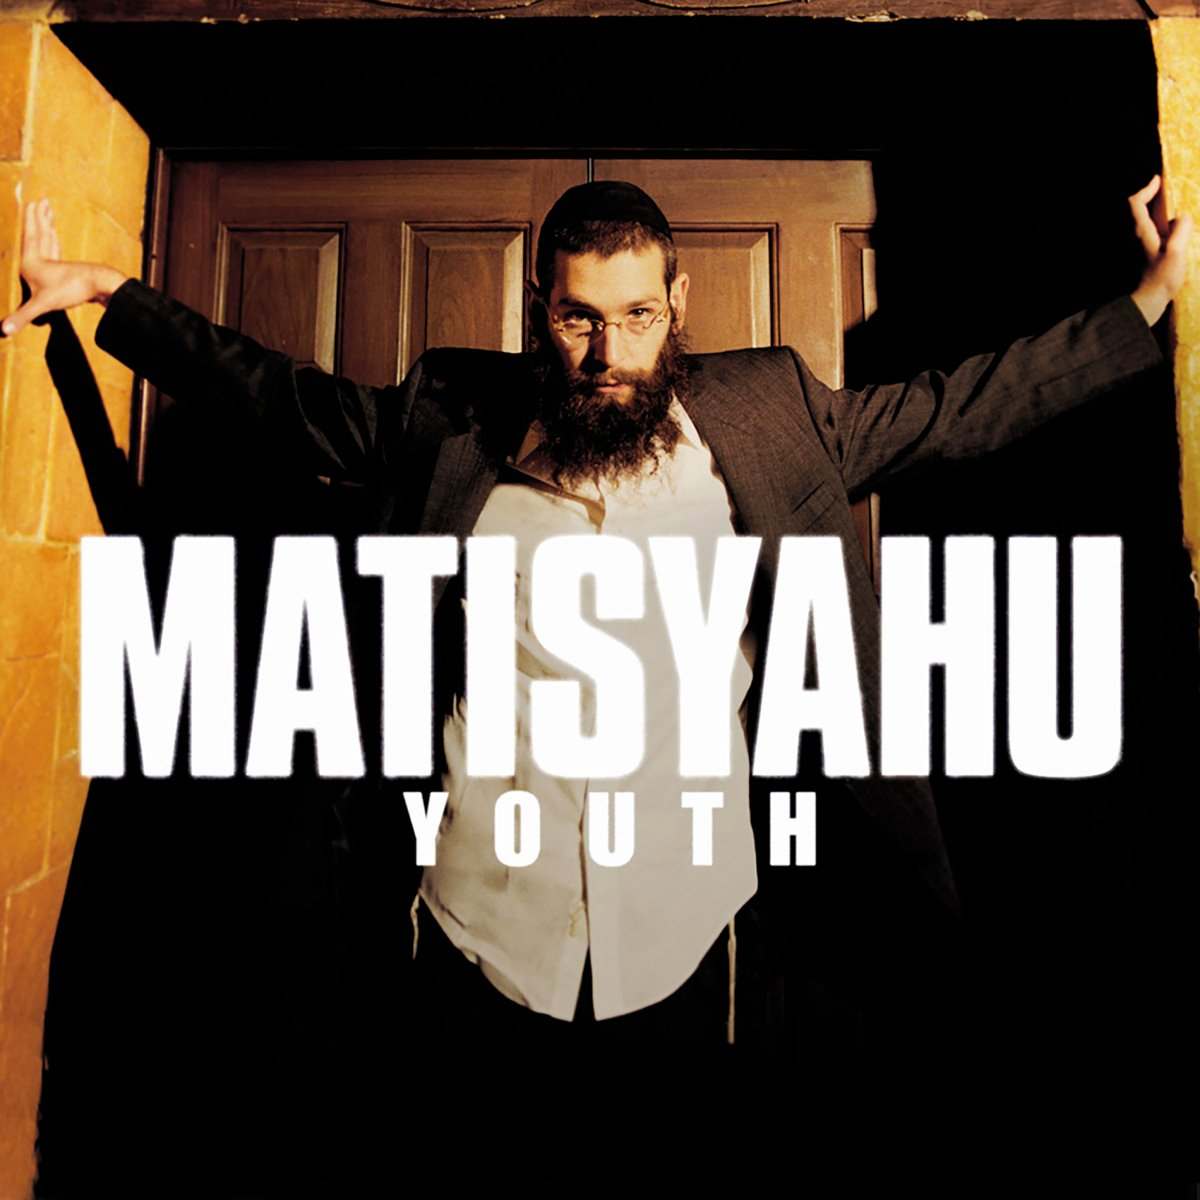 Matisyahu, Youth